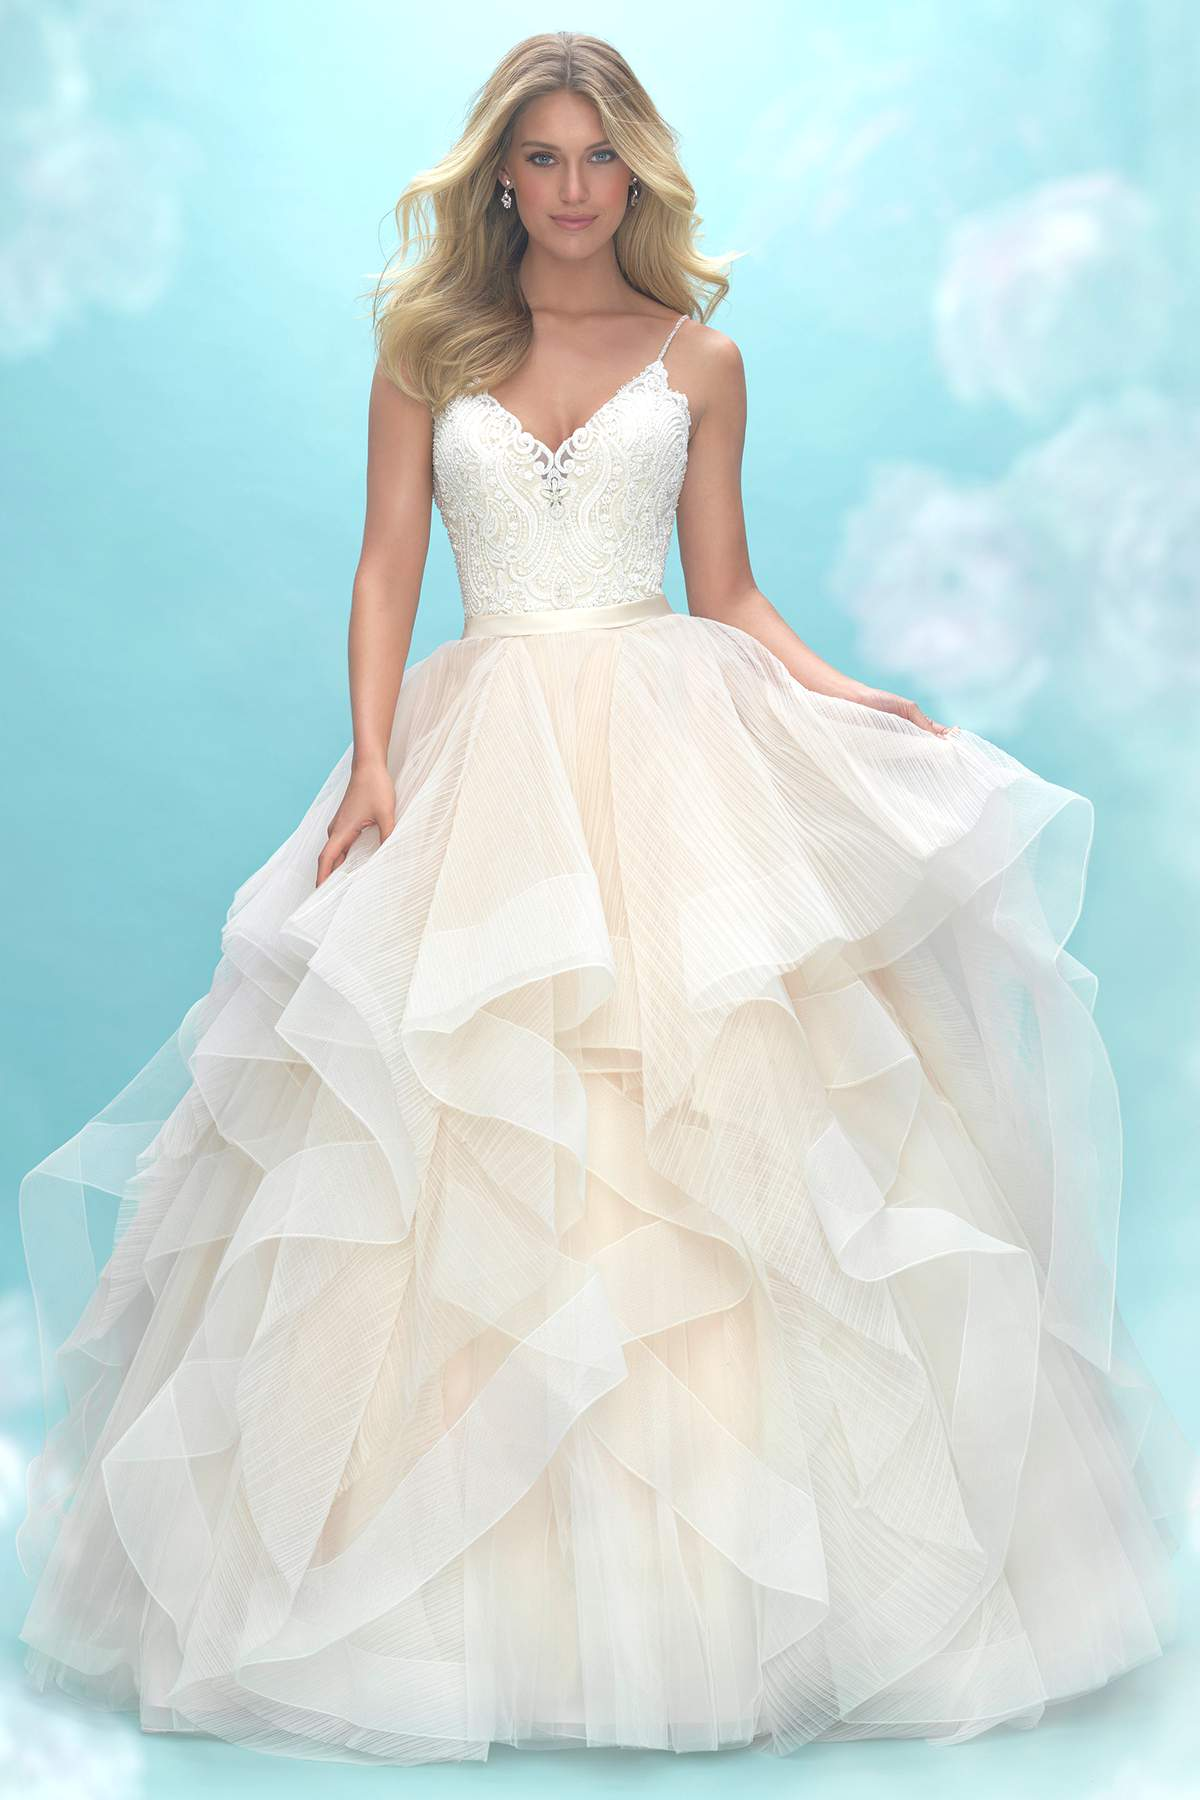 4589ec1711c1 Style 9450 by Allure Bridals - Find Your Dream Dress